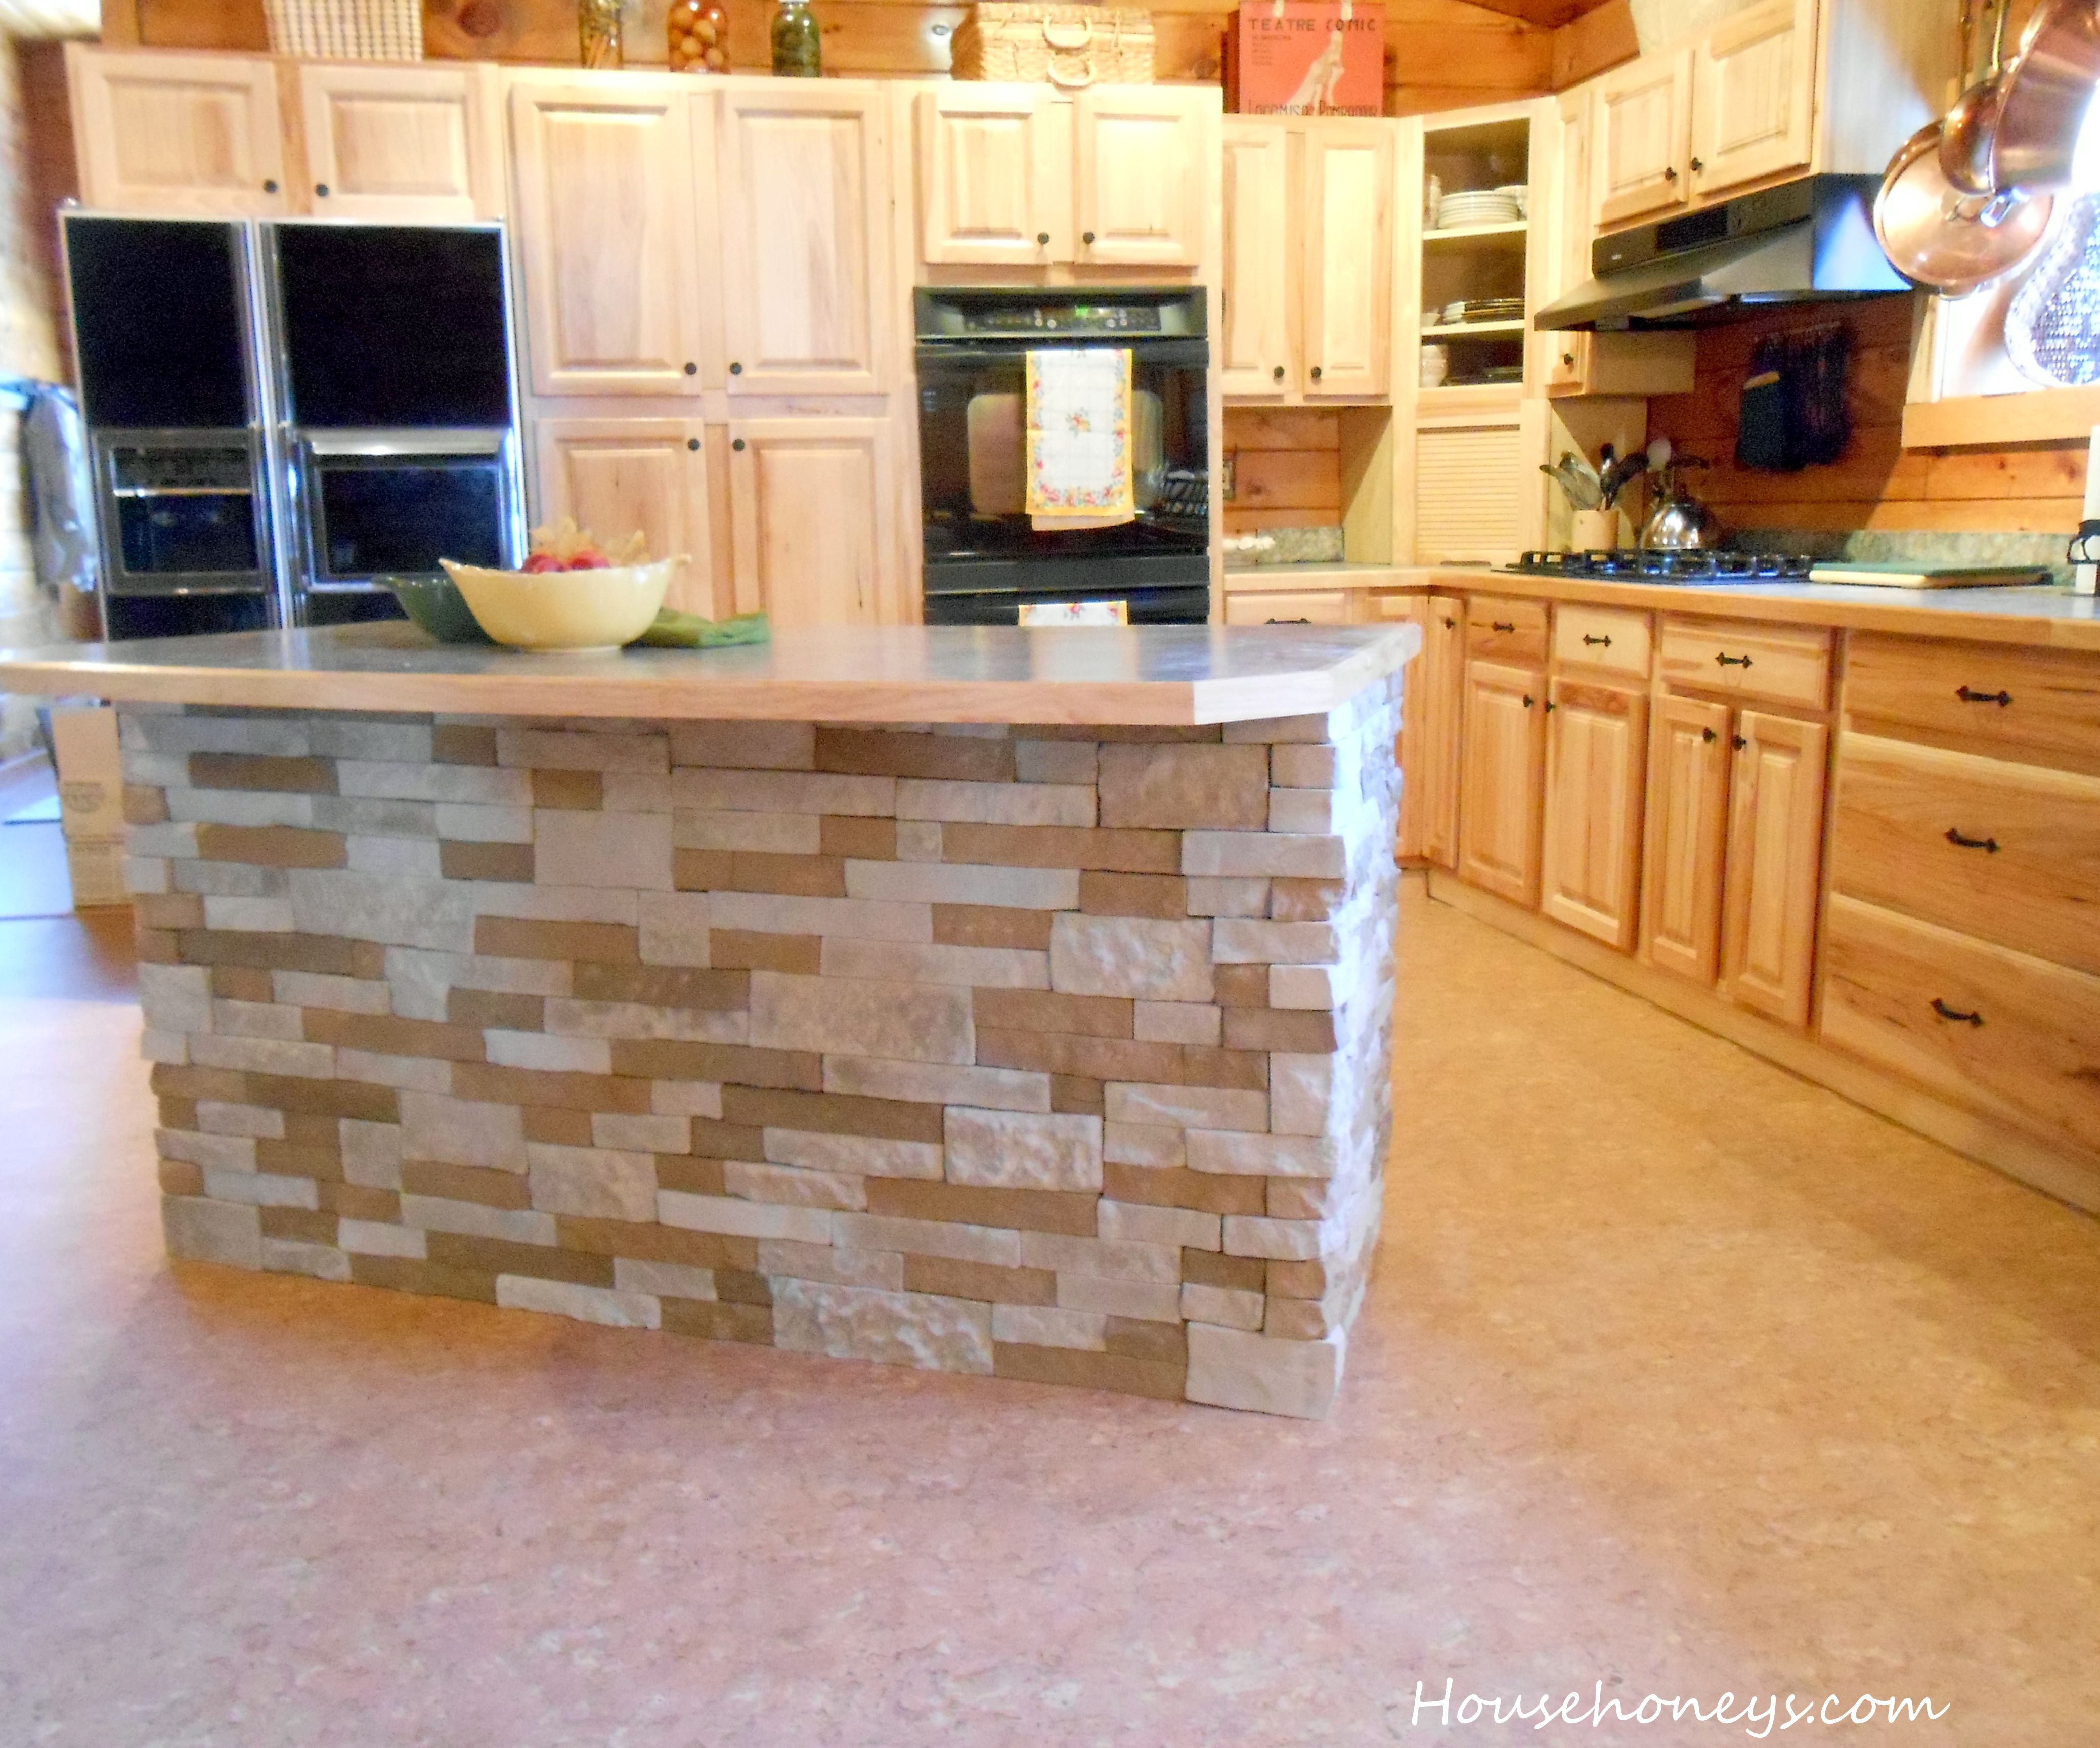 The island kitchen design - Air Stone Kitchen Island Our New Kitchen Just Needs A Little Pizazz And The Island